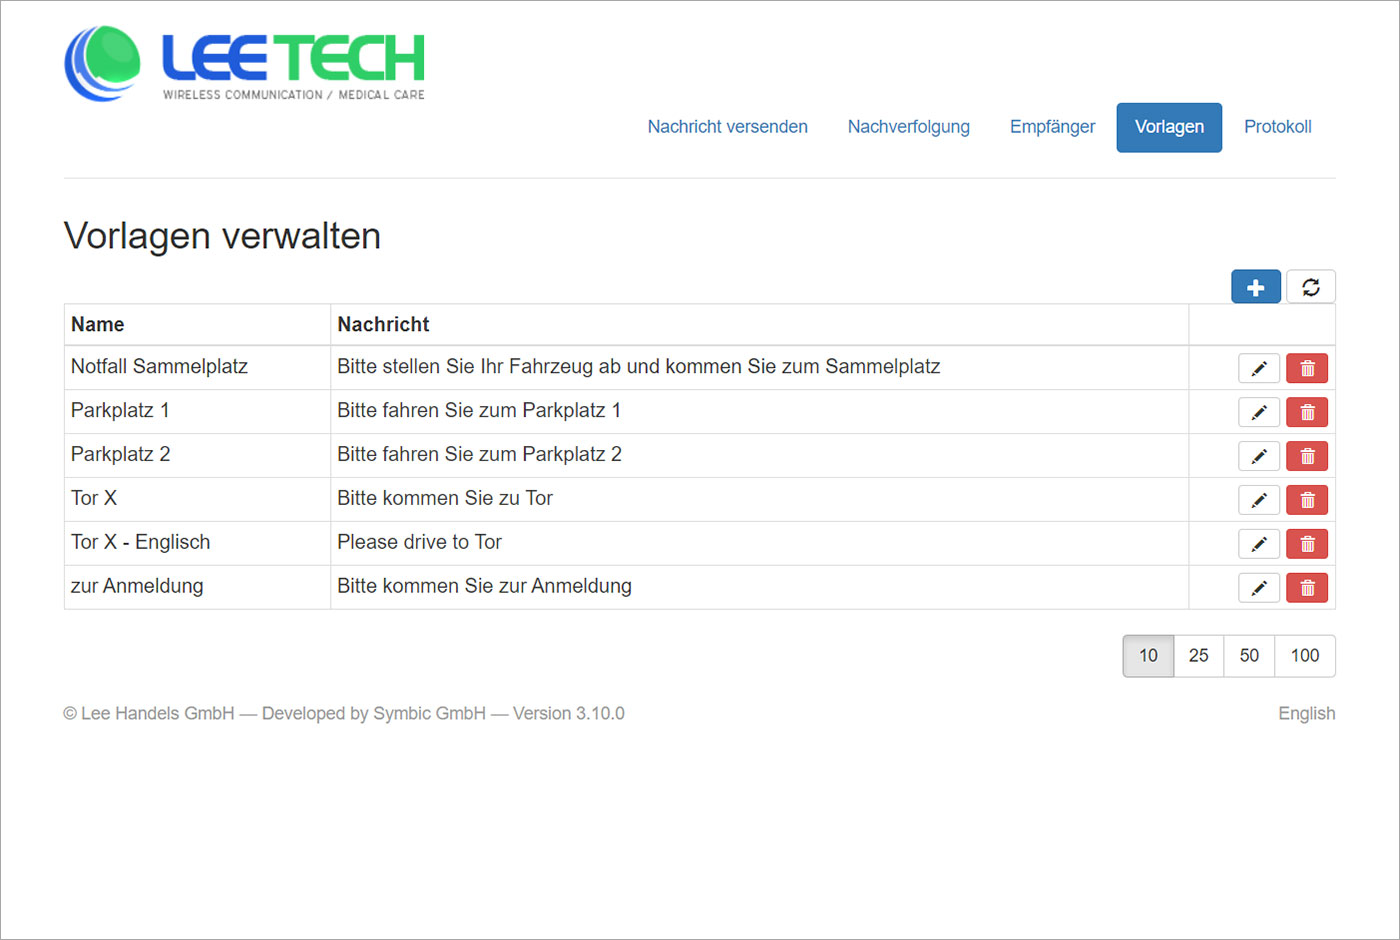 Lee-Tech Software